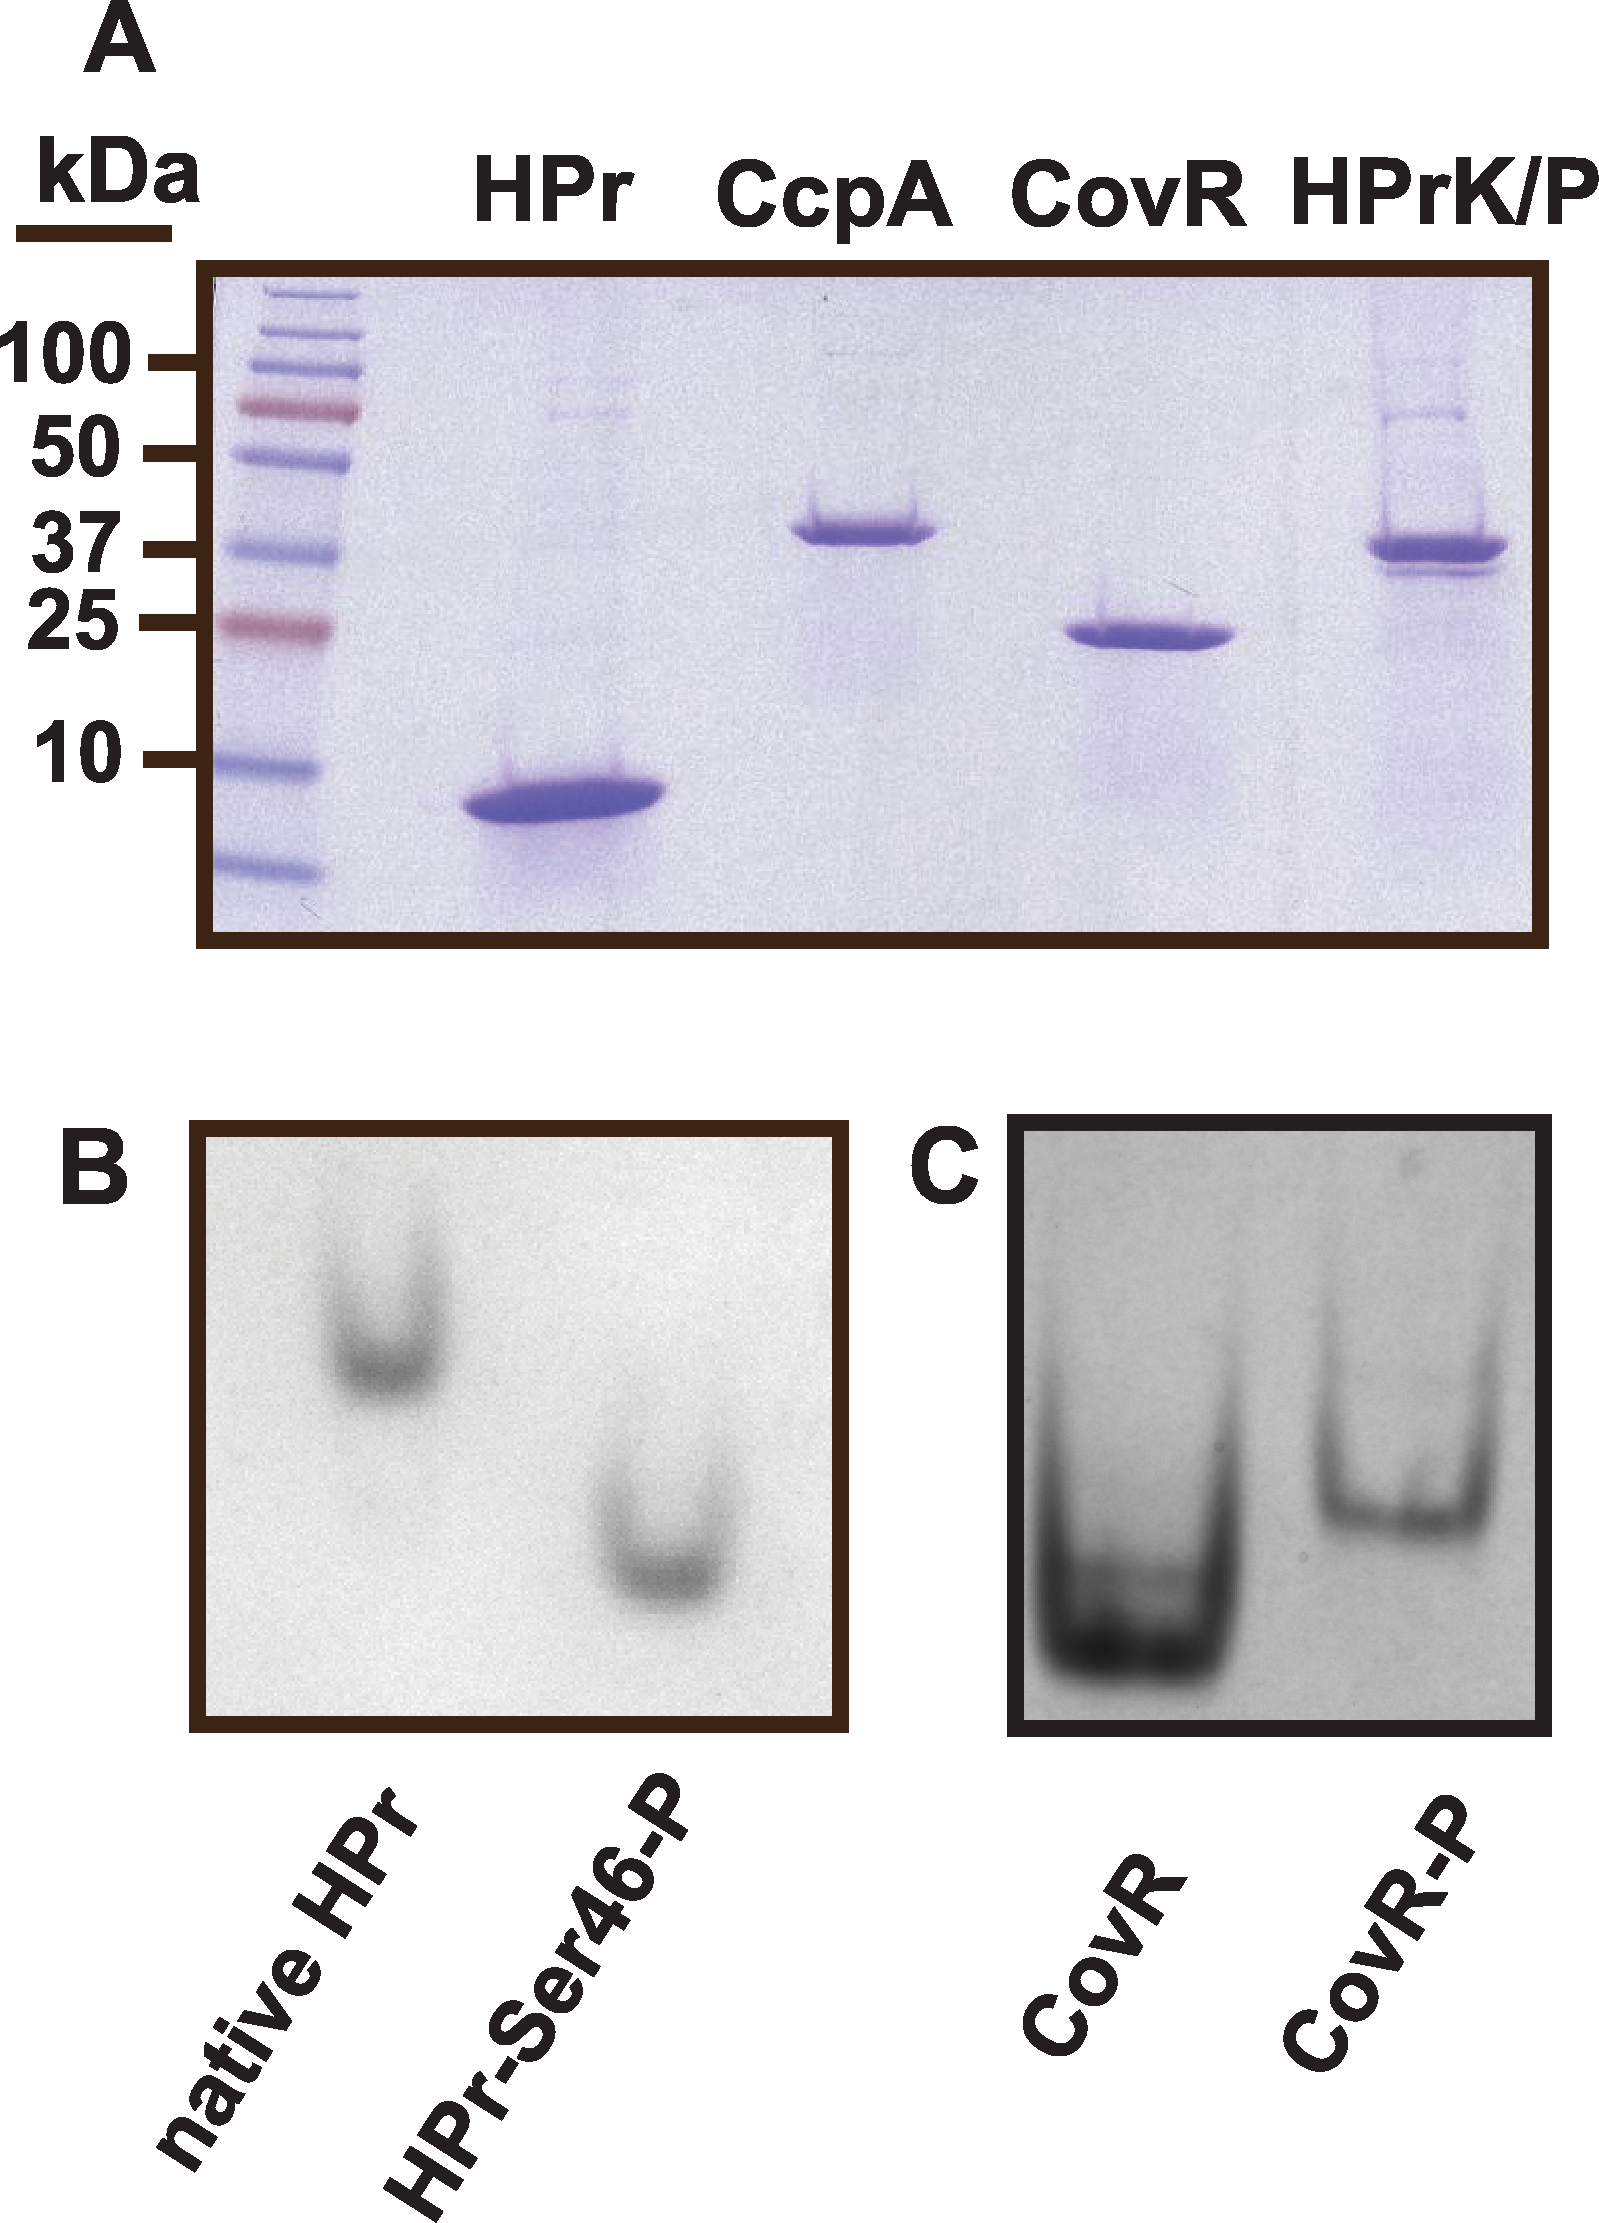 Recombinant GAS protein production and phosphorylation assays of recombinant GAS proteins.